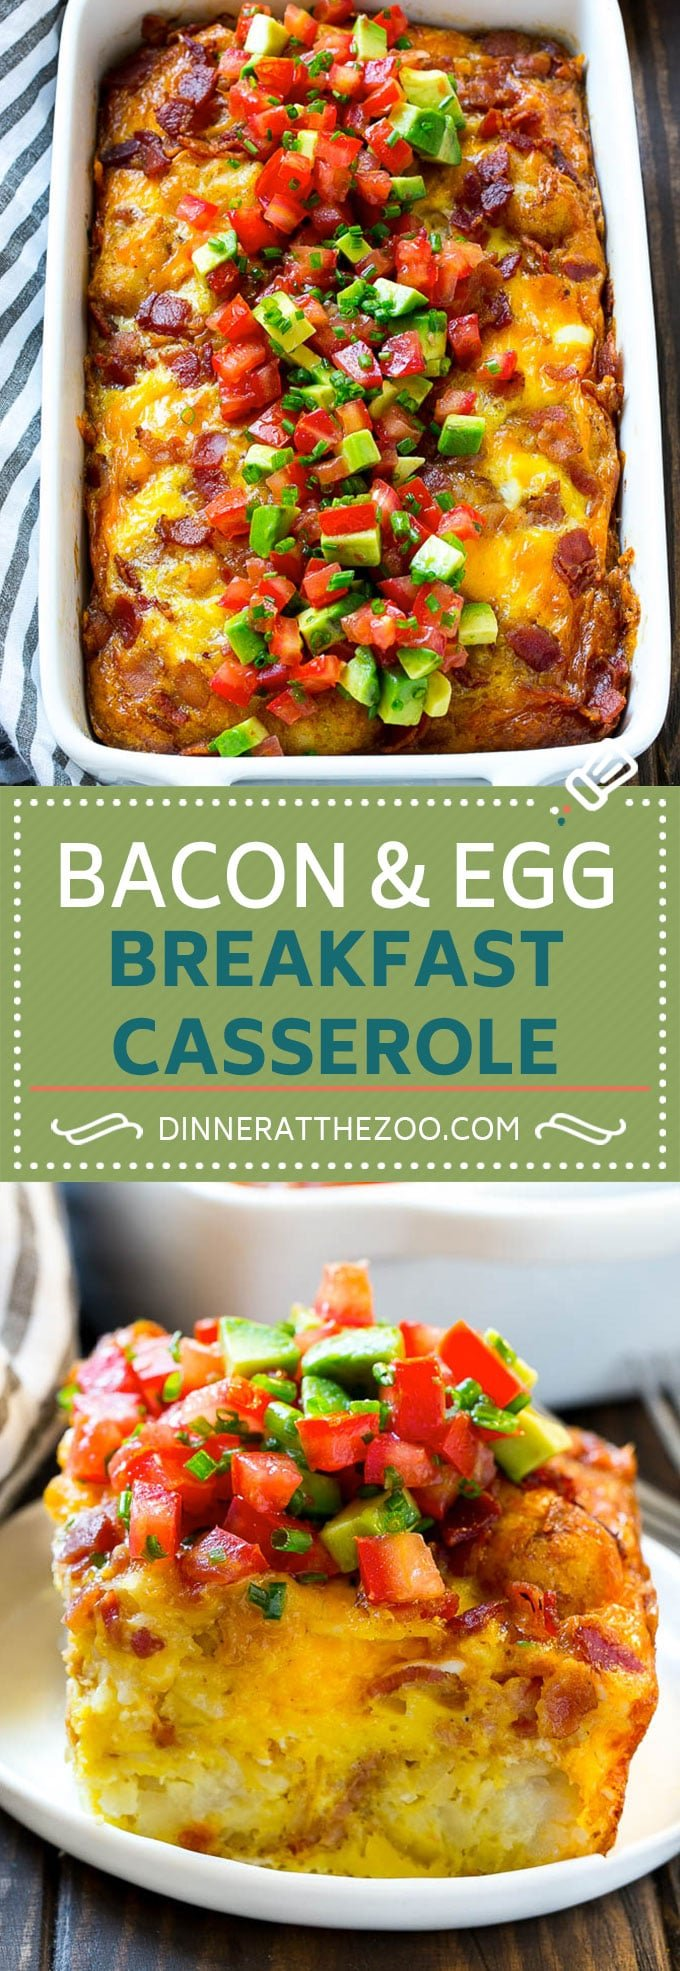 Breakfast Casserole with Bacon Recipe | Bacon and Egg Casserole | Egg Casserole with Bacon | Bacon Breakfast Casserole #eggs #bacon #casserole #breakfast #brunch #dinneratthezoo